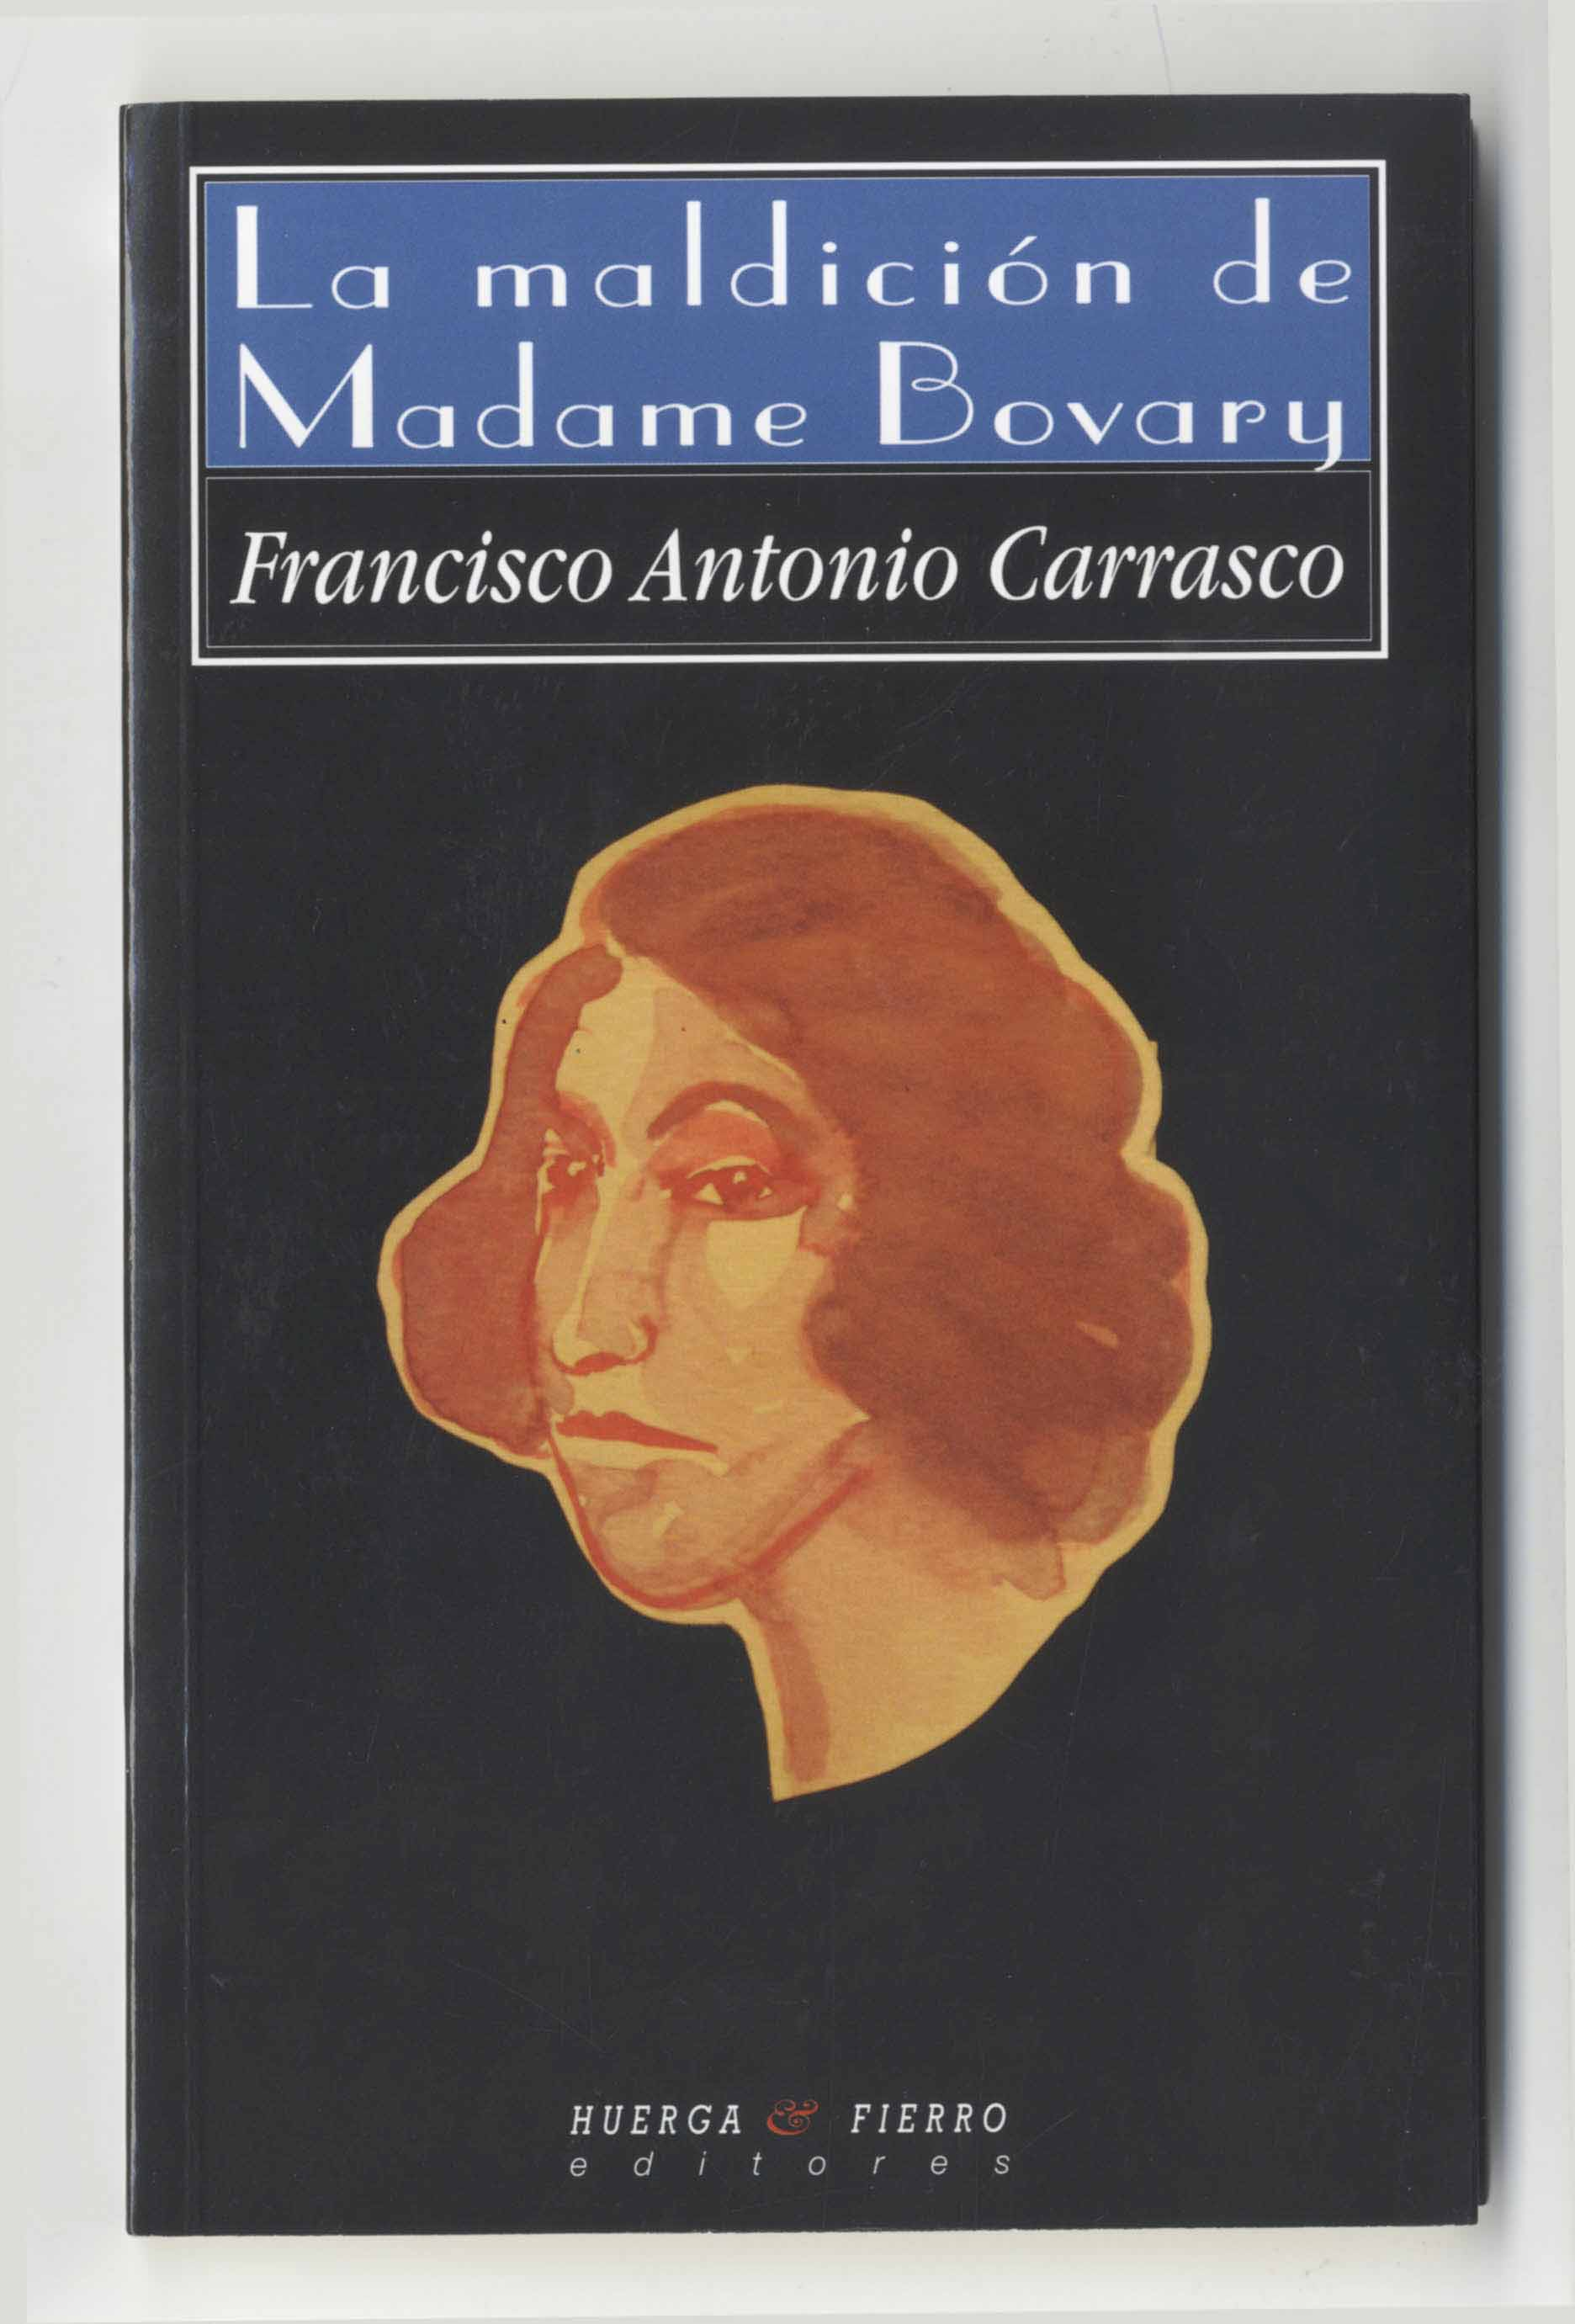 Francisco Antonio Carrasco - La maldición de Madame Bobary